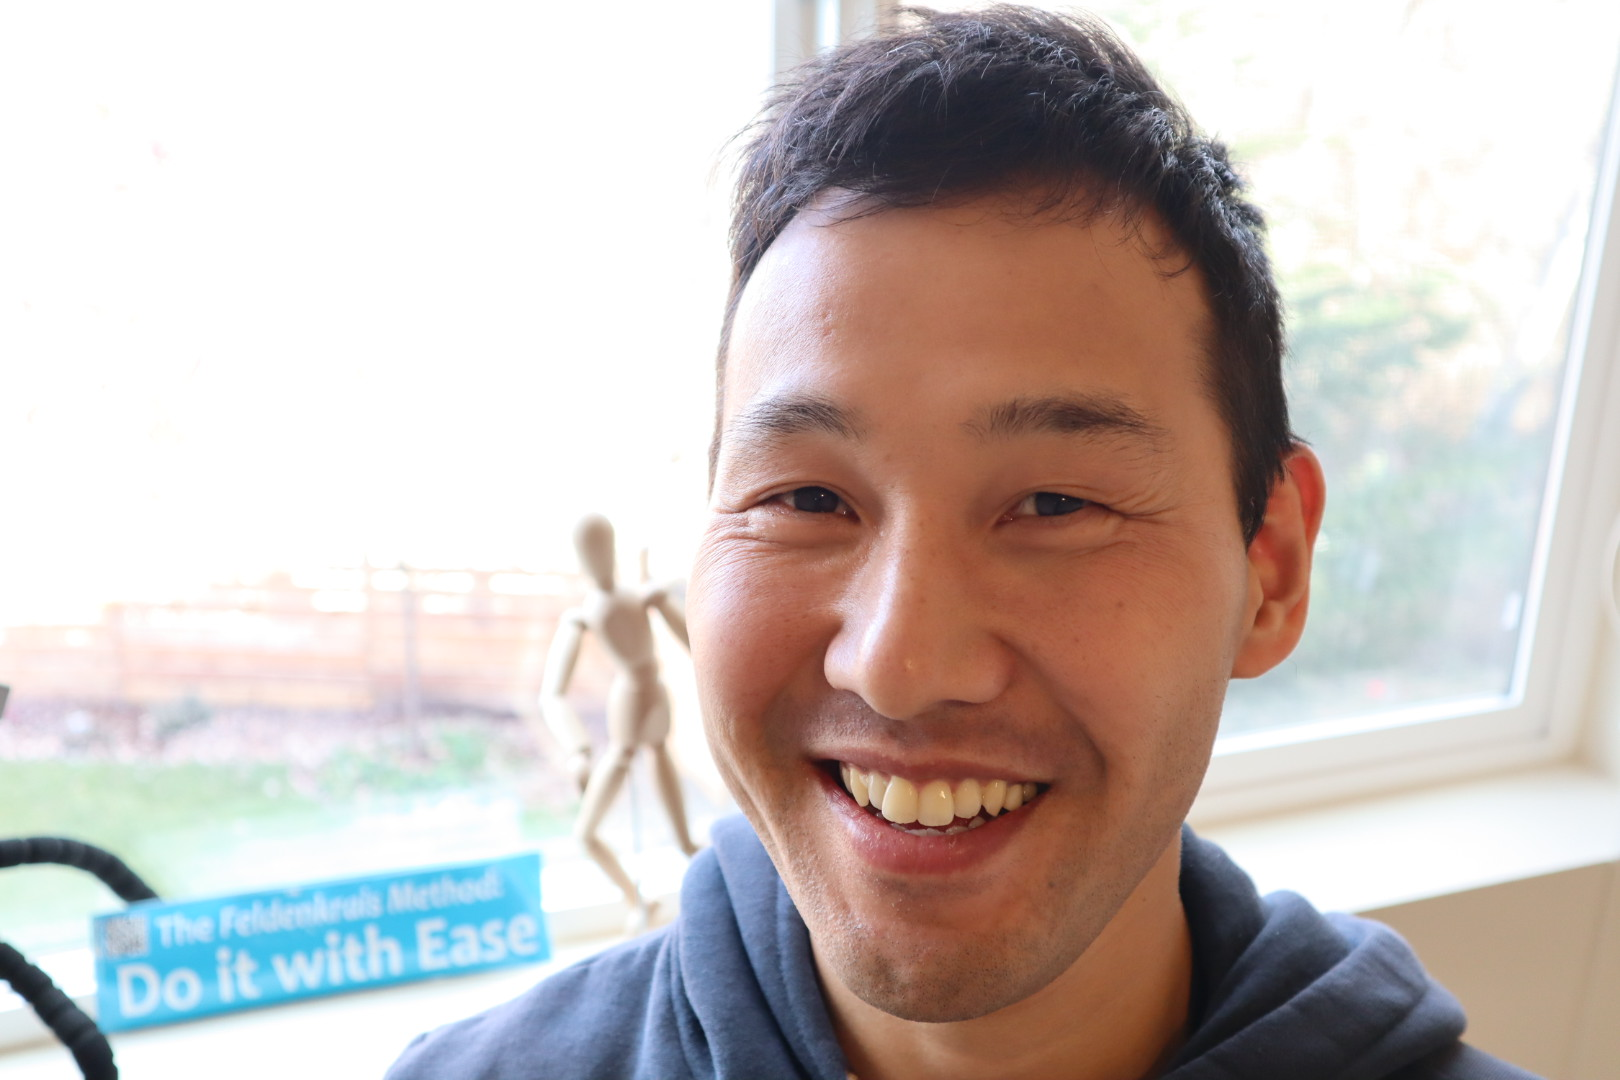 - Taro Iwamoto is a Feldenkrais practitioner and a movement coach with extensive backgrounds in rehabilitation, athletic training, and martial arts. Taro uses the Feldenkrais Method(TM), a mindfulness-based movement/learning system to teach his clients how to move better, feel better, and live better.